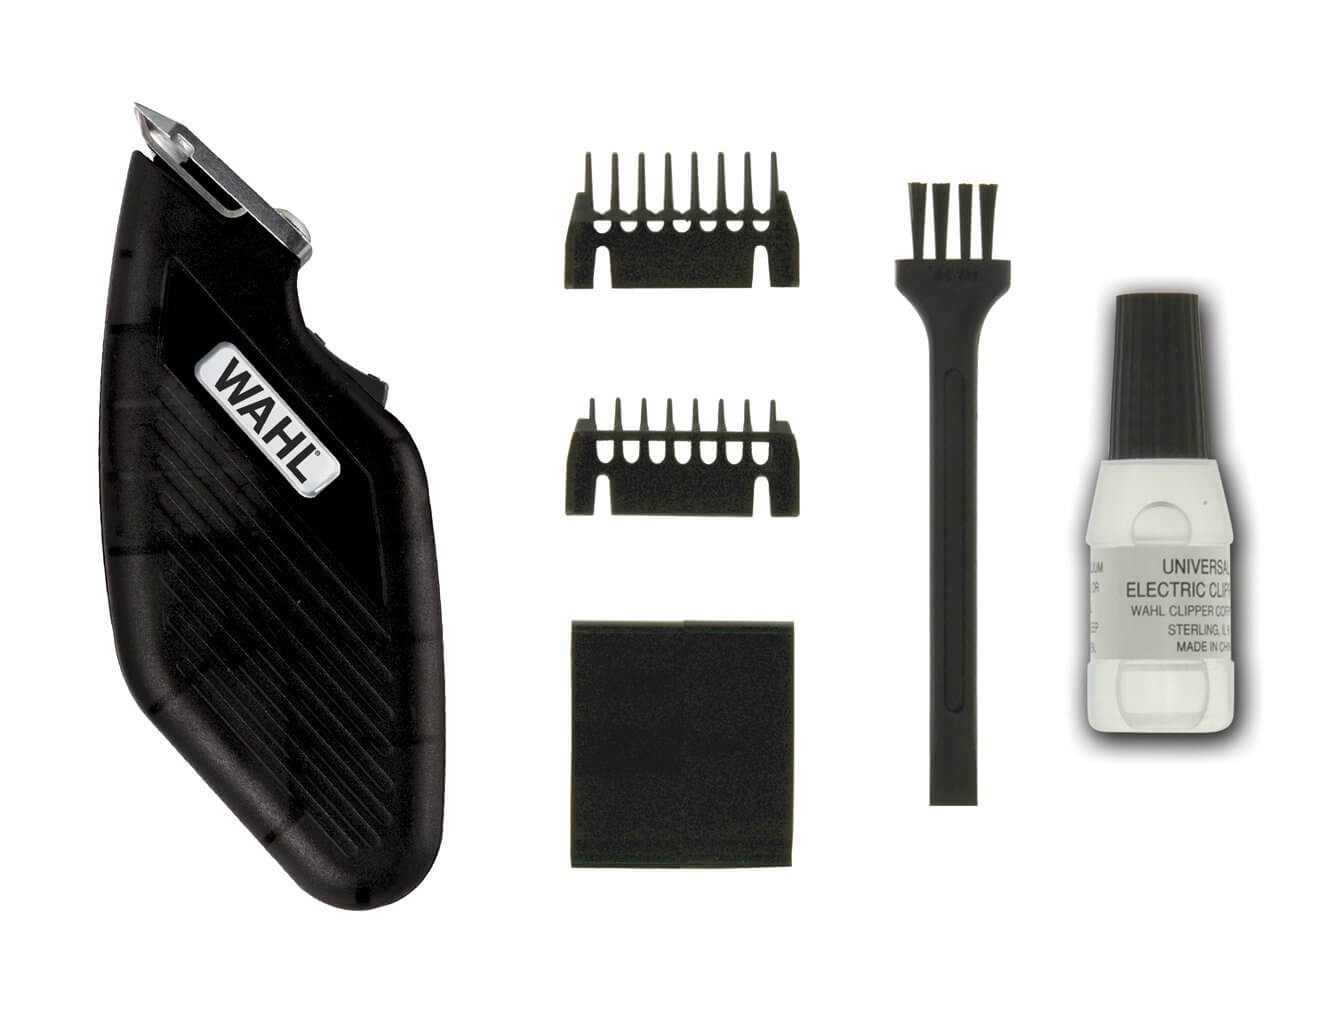 Wahl 9962-717 Travel Cordless / Battery Trimmer